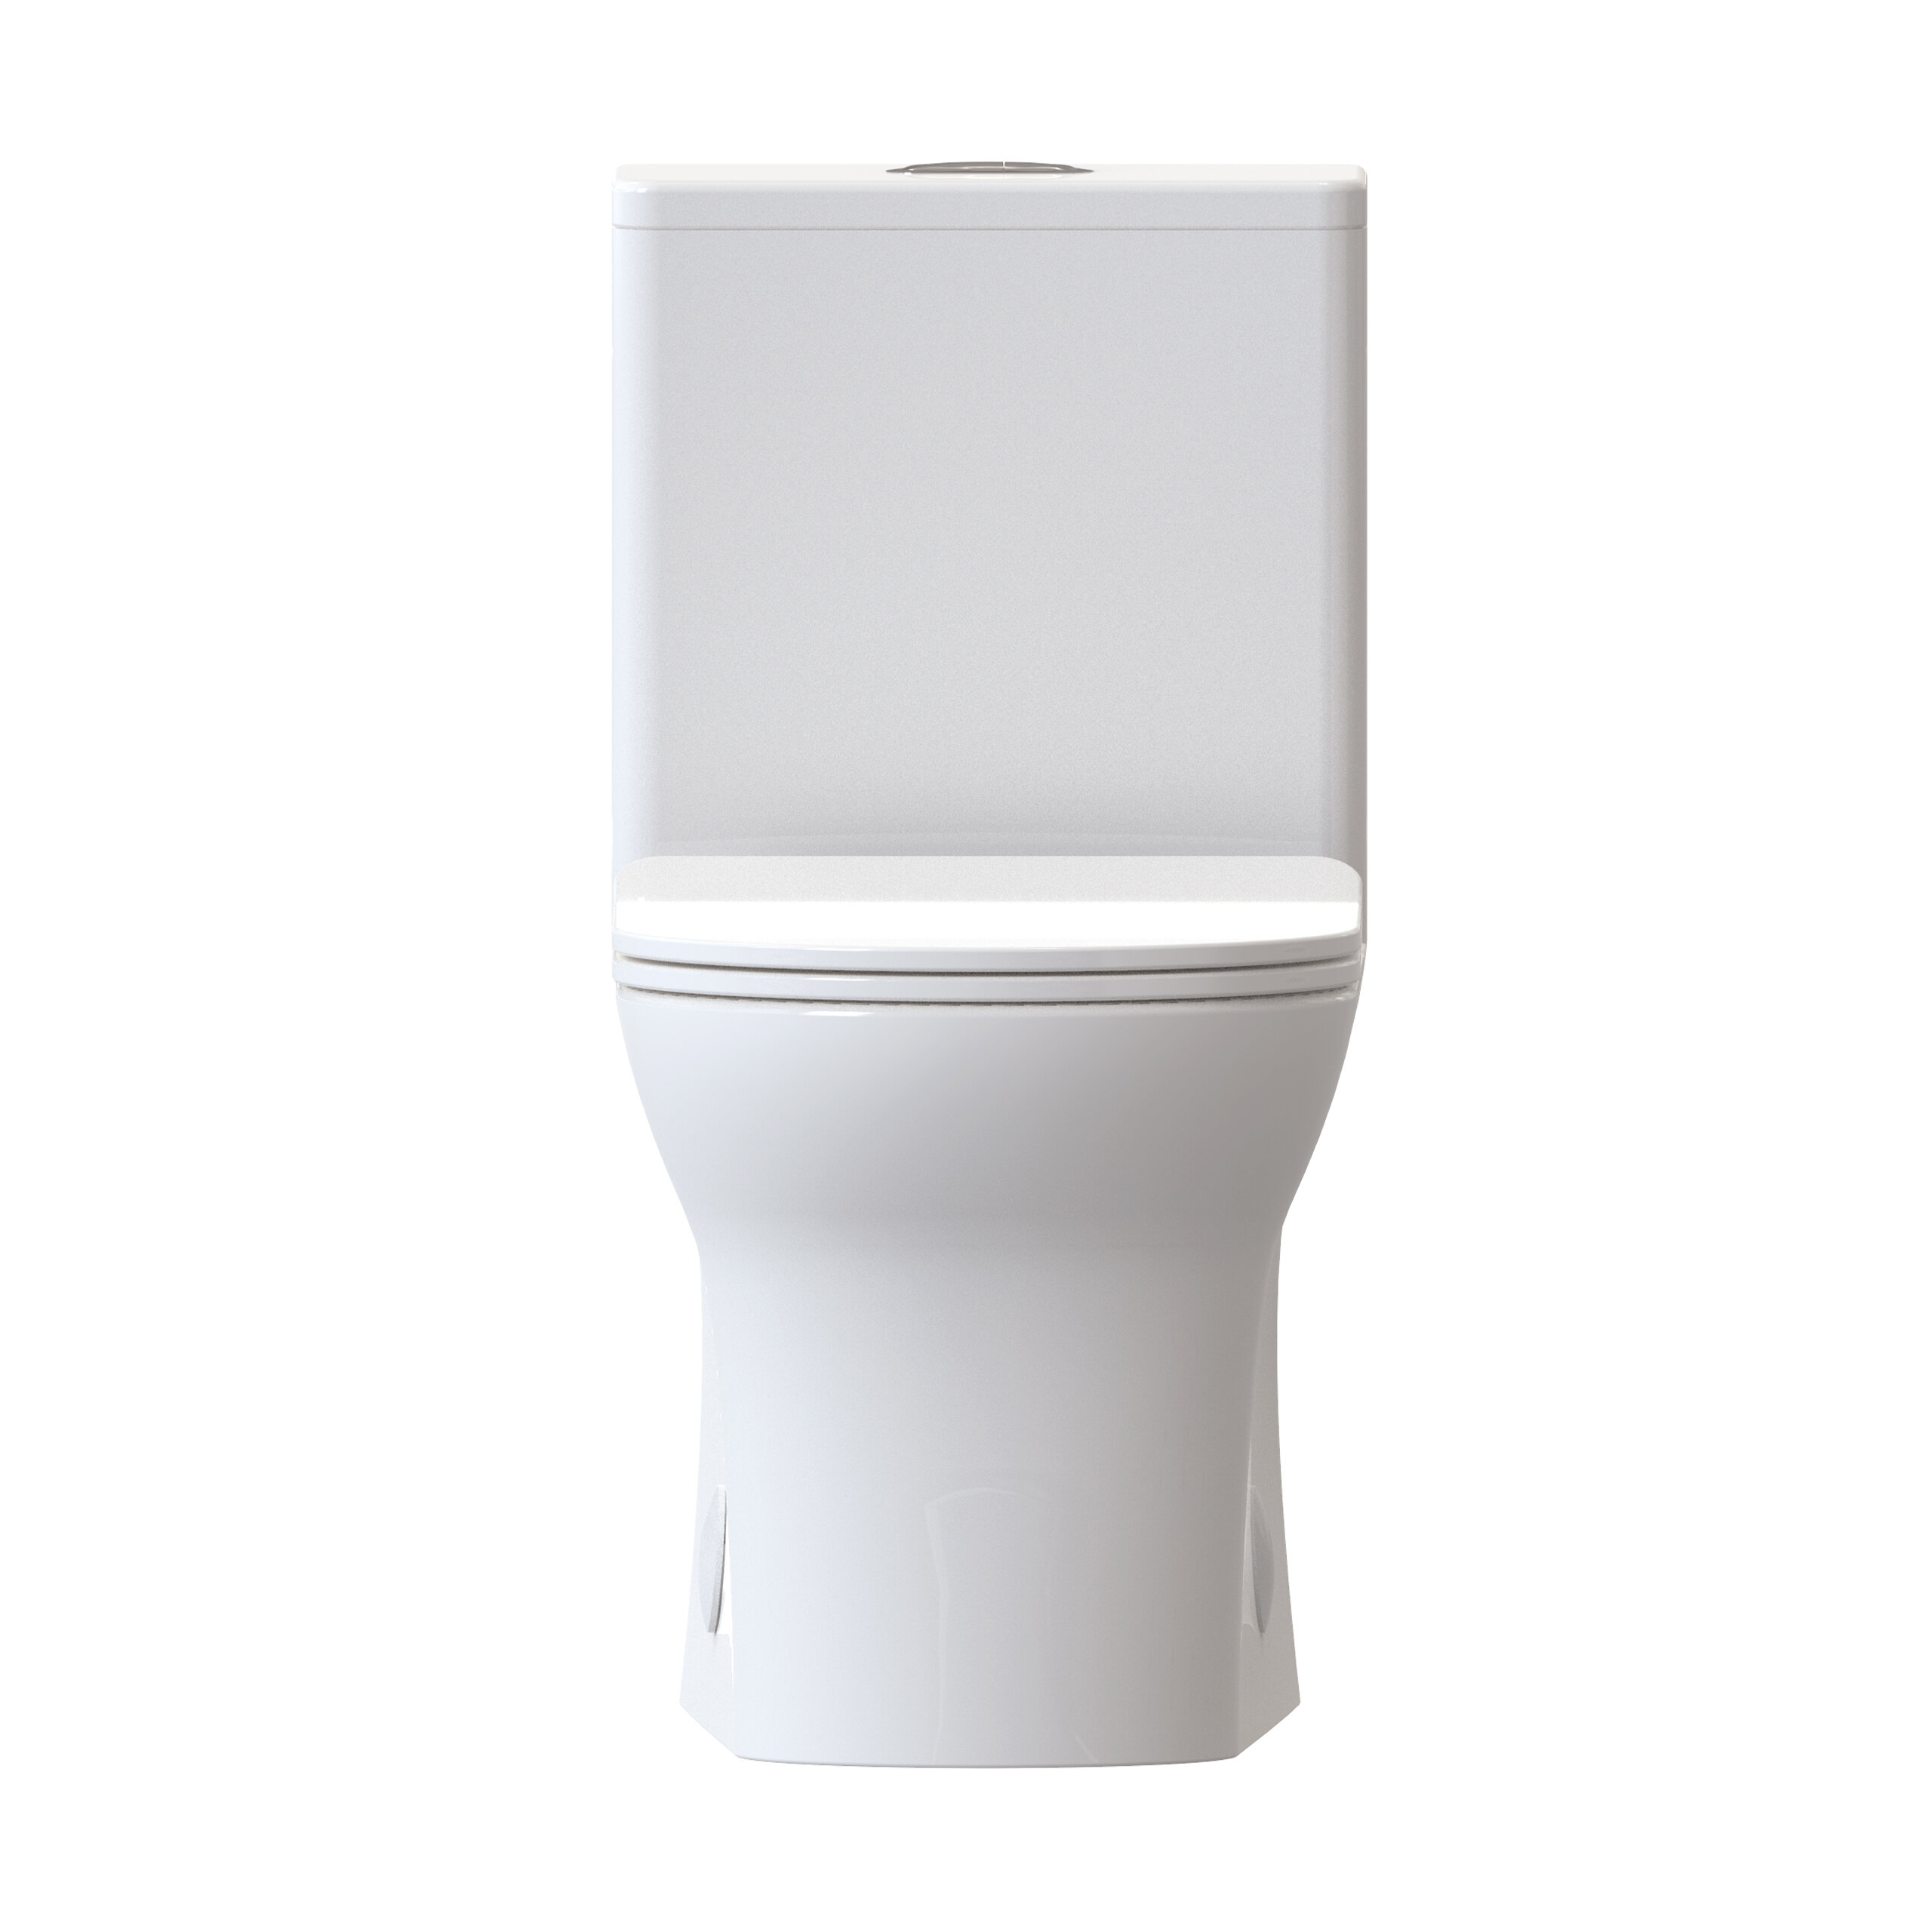 Admirable Burdon 1 28 Gpf Elongated One Piece Toilet Seat Included Onthecornerstone Fun Painted Chair Ideas Images Onthecornerstoneorg